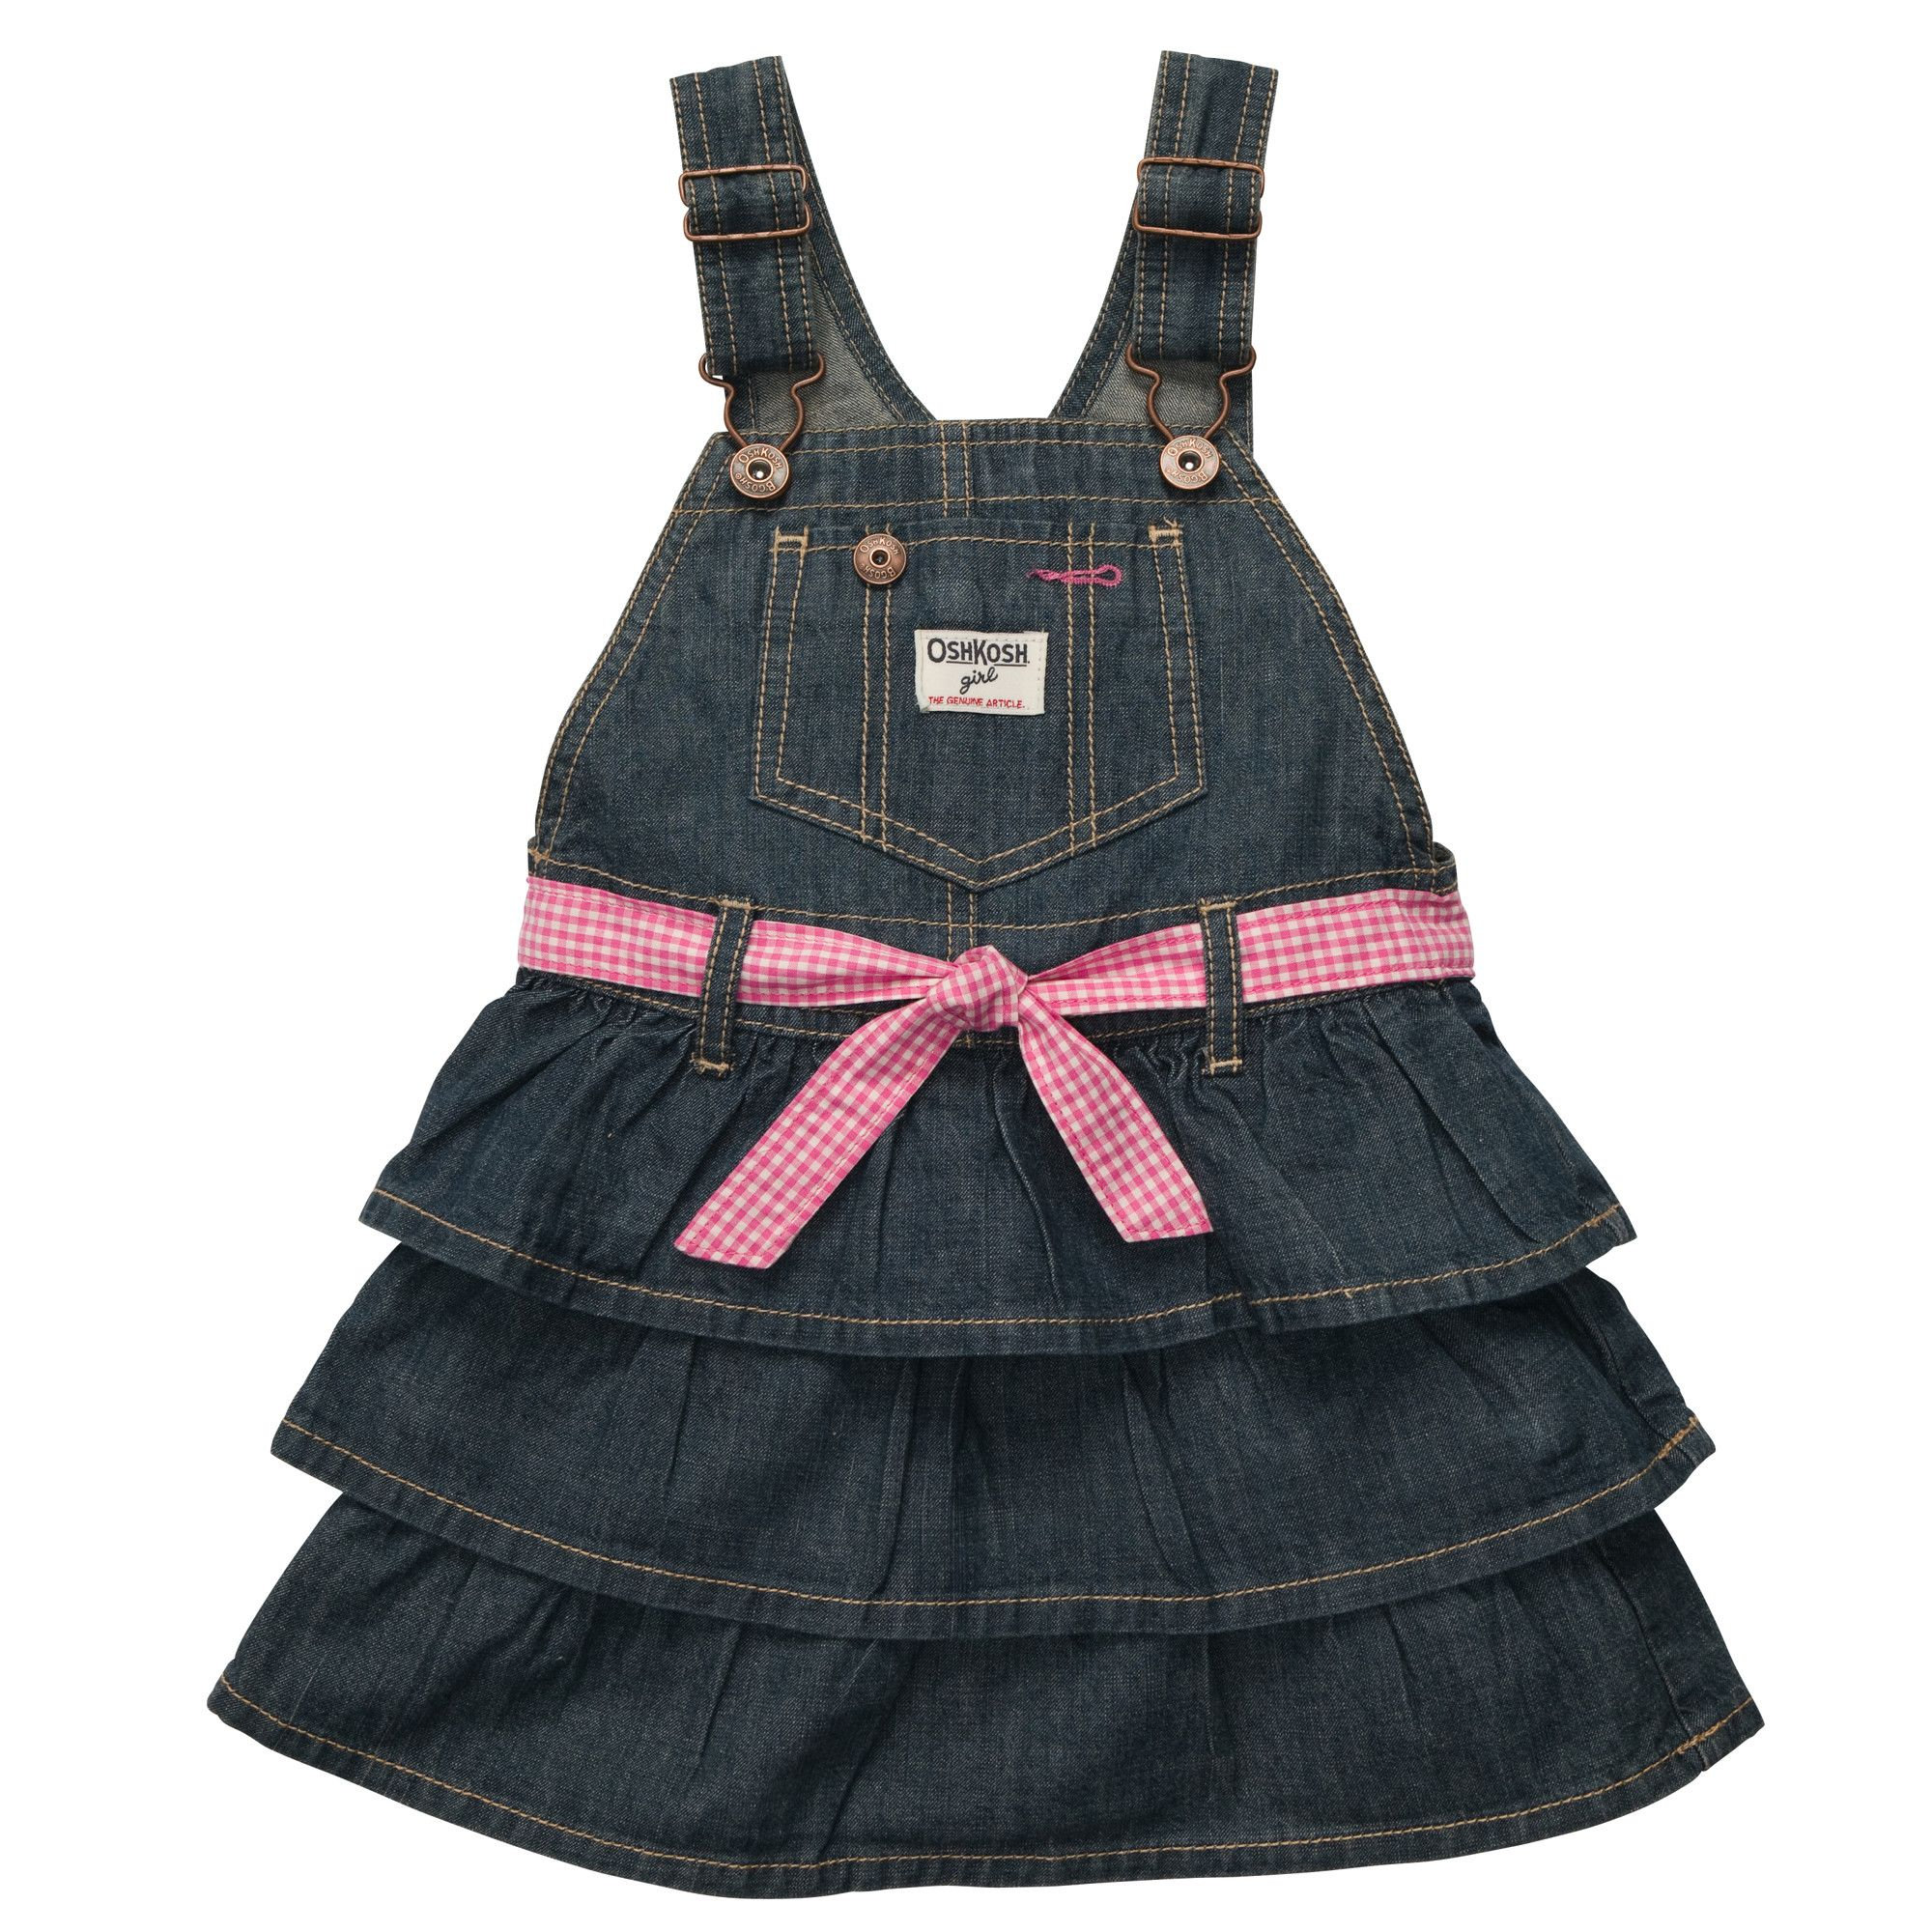 286937f38 Tiered Ruffle Denim Jumper | Baby Girl Overalls & Jumpers | Girl ...